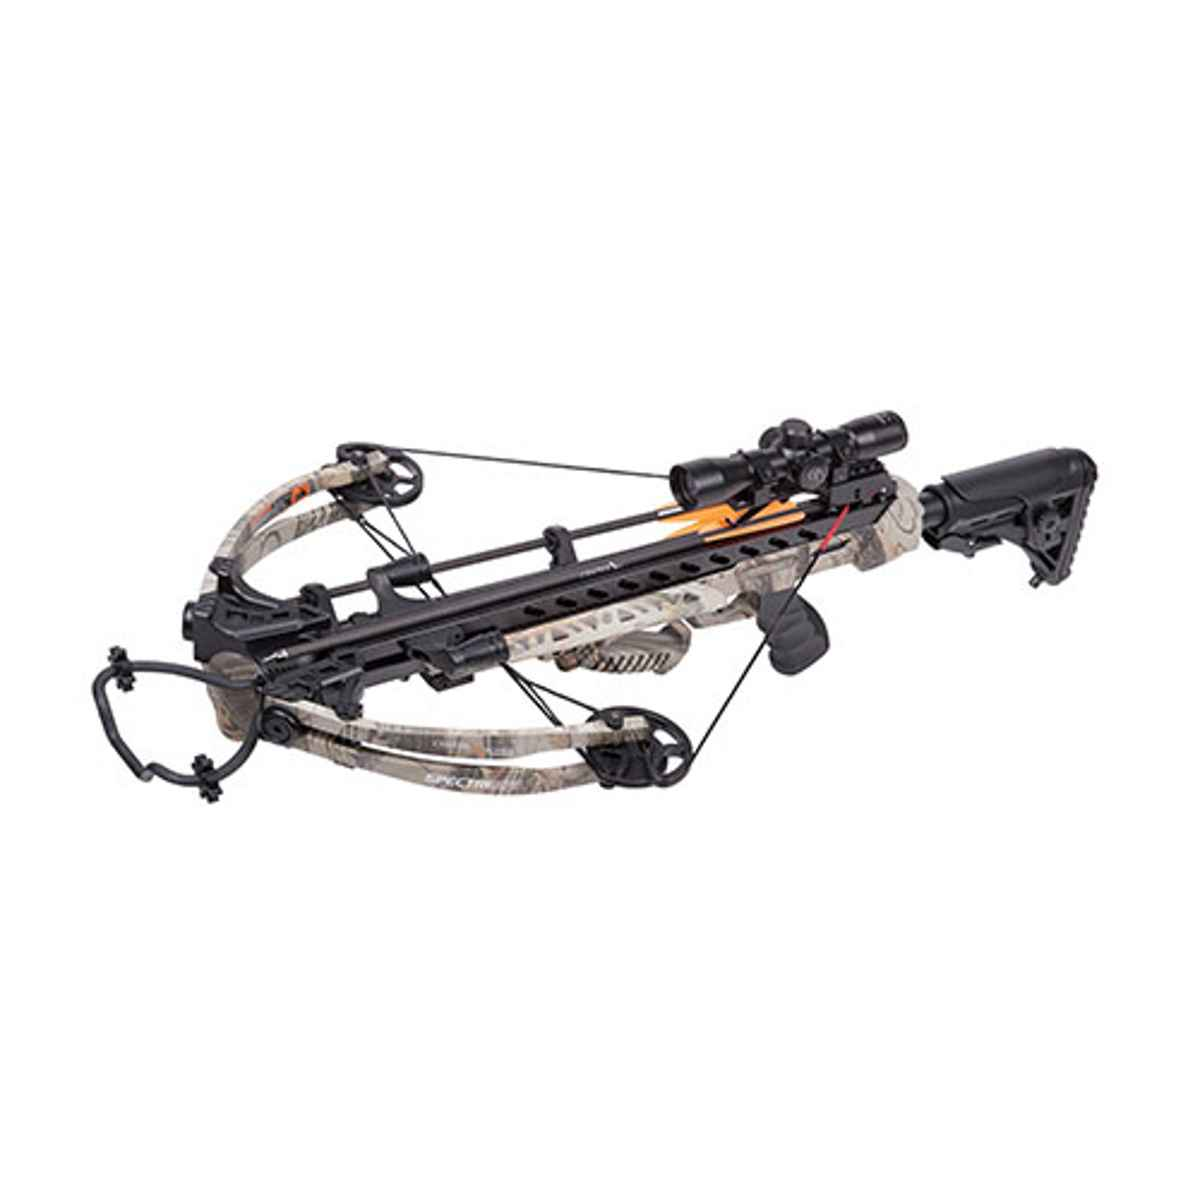 Crosman Spectre 375 Compound Crossbow Package